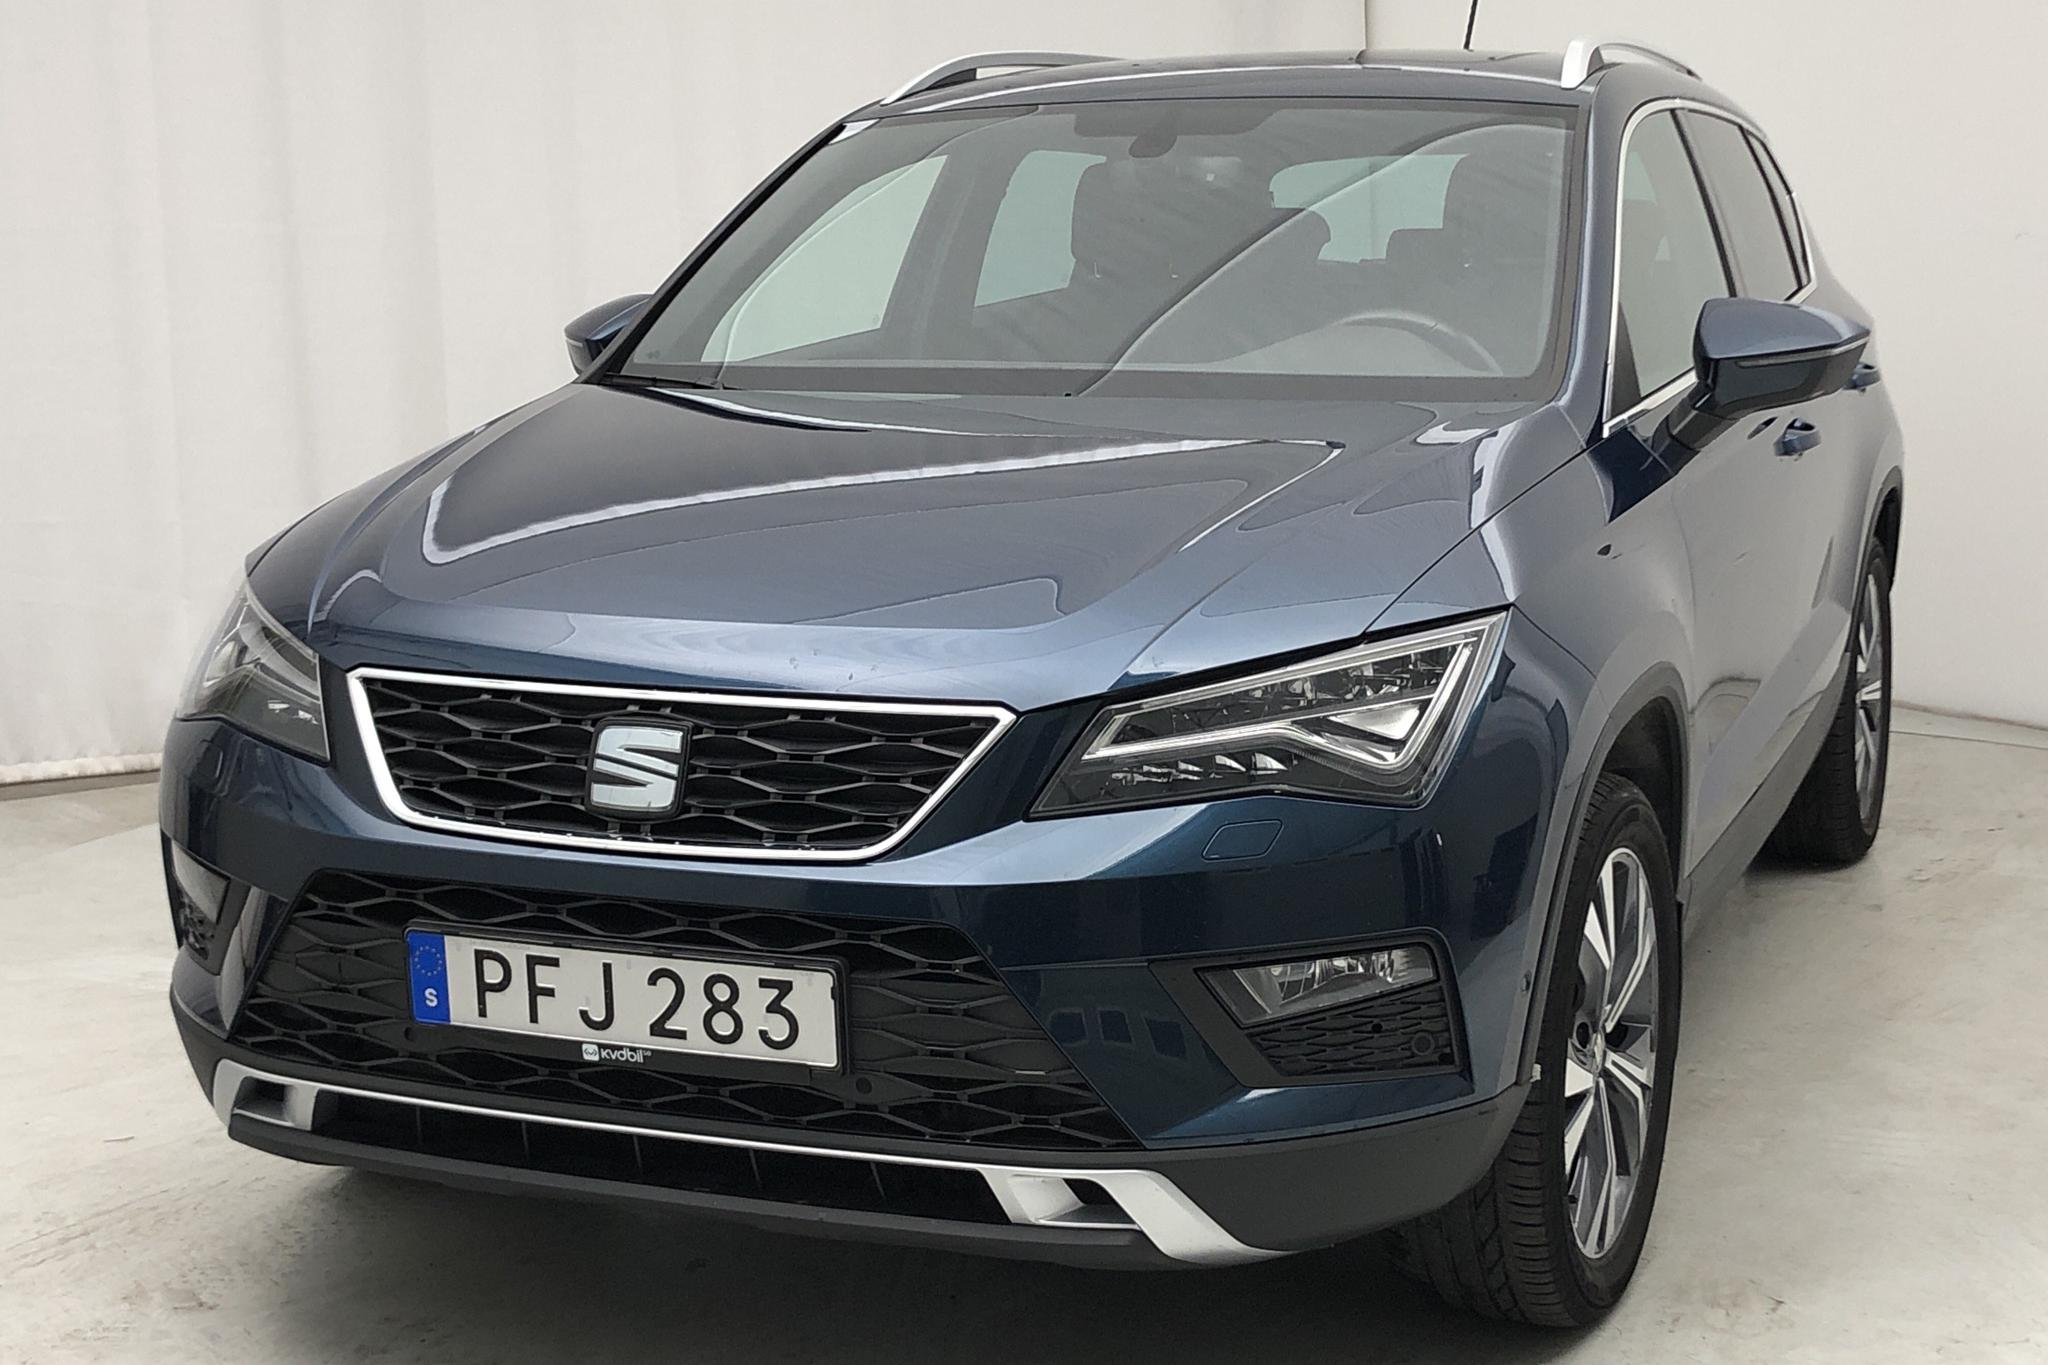 Seat Ateca 1.4 TSI ACT 4Drive (150hk)Nav. - 73 000 km - Manual - blue - 2017